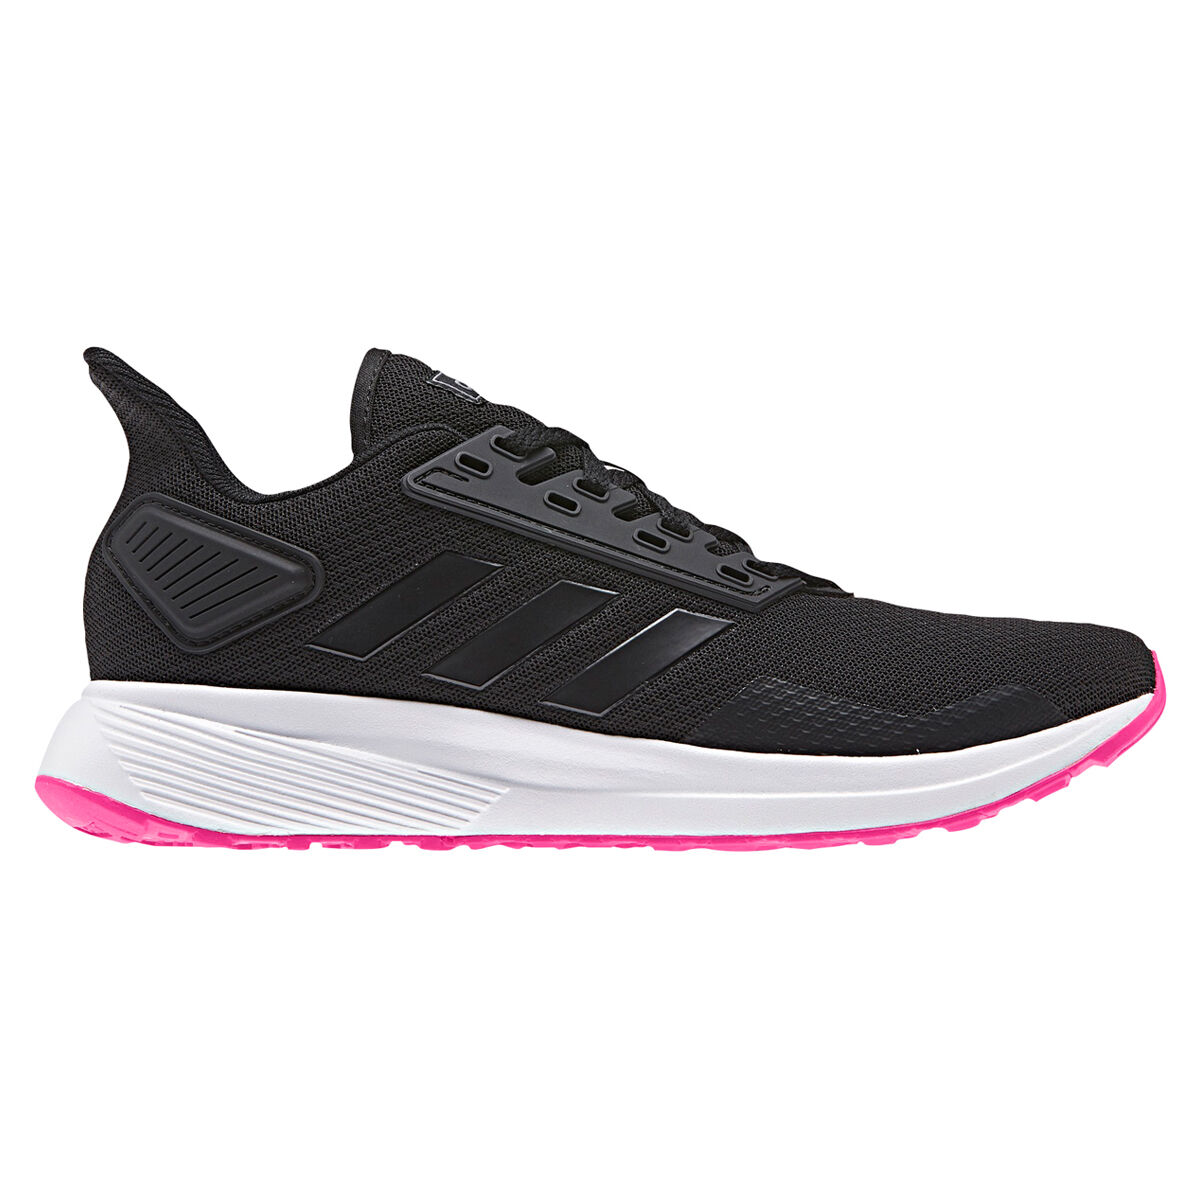 size 40 85e41 5ebce ... clearance adidas duramo 9 womens running shoes black pink us 5 black  pink 56f2d f98f8